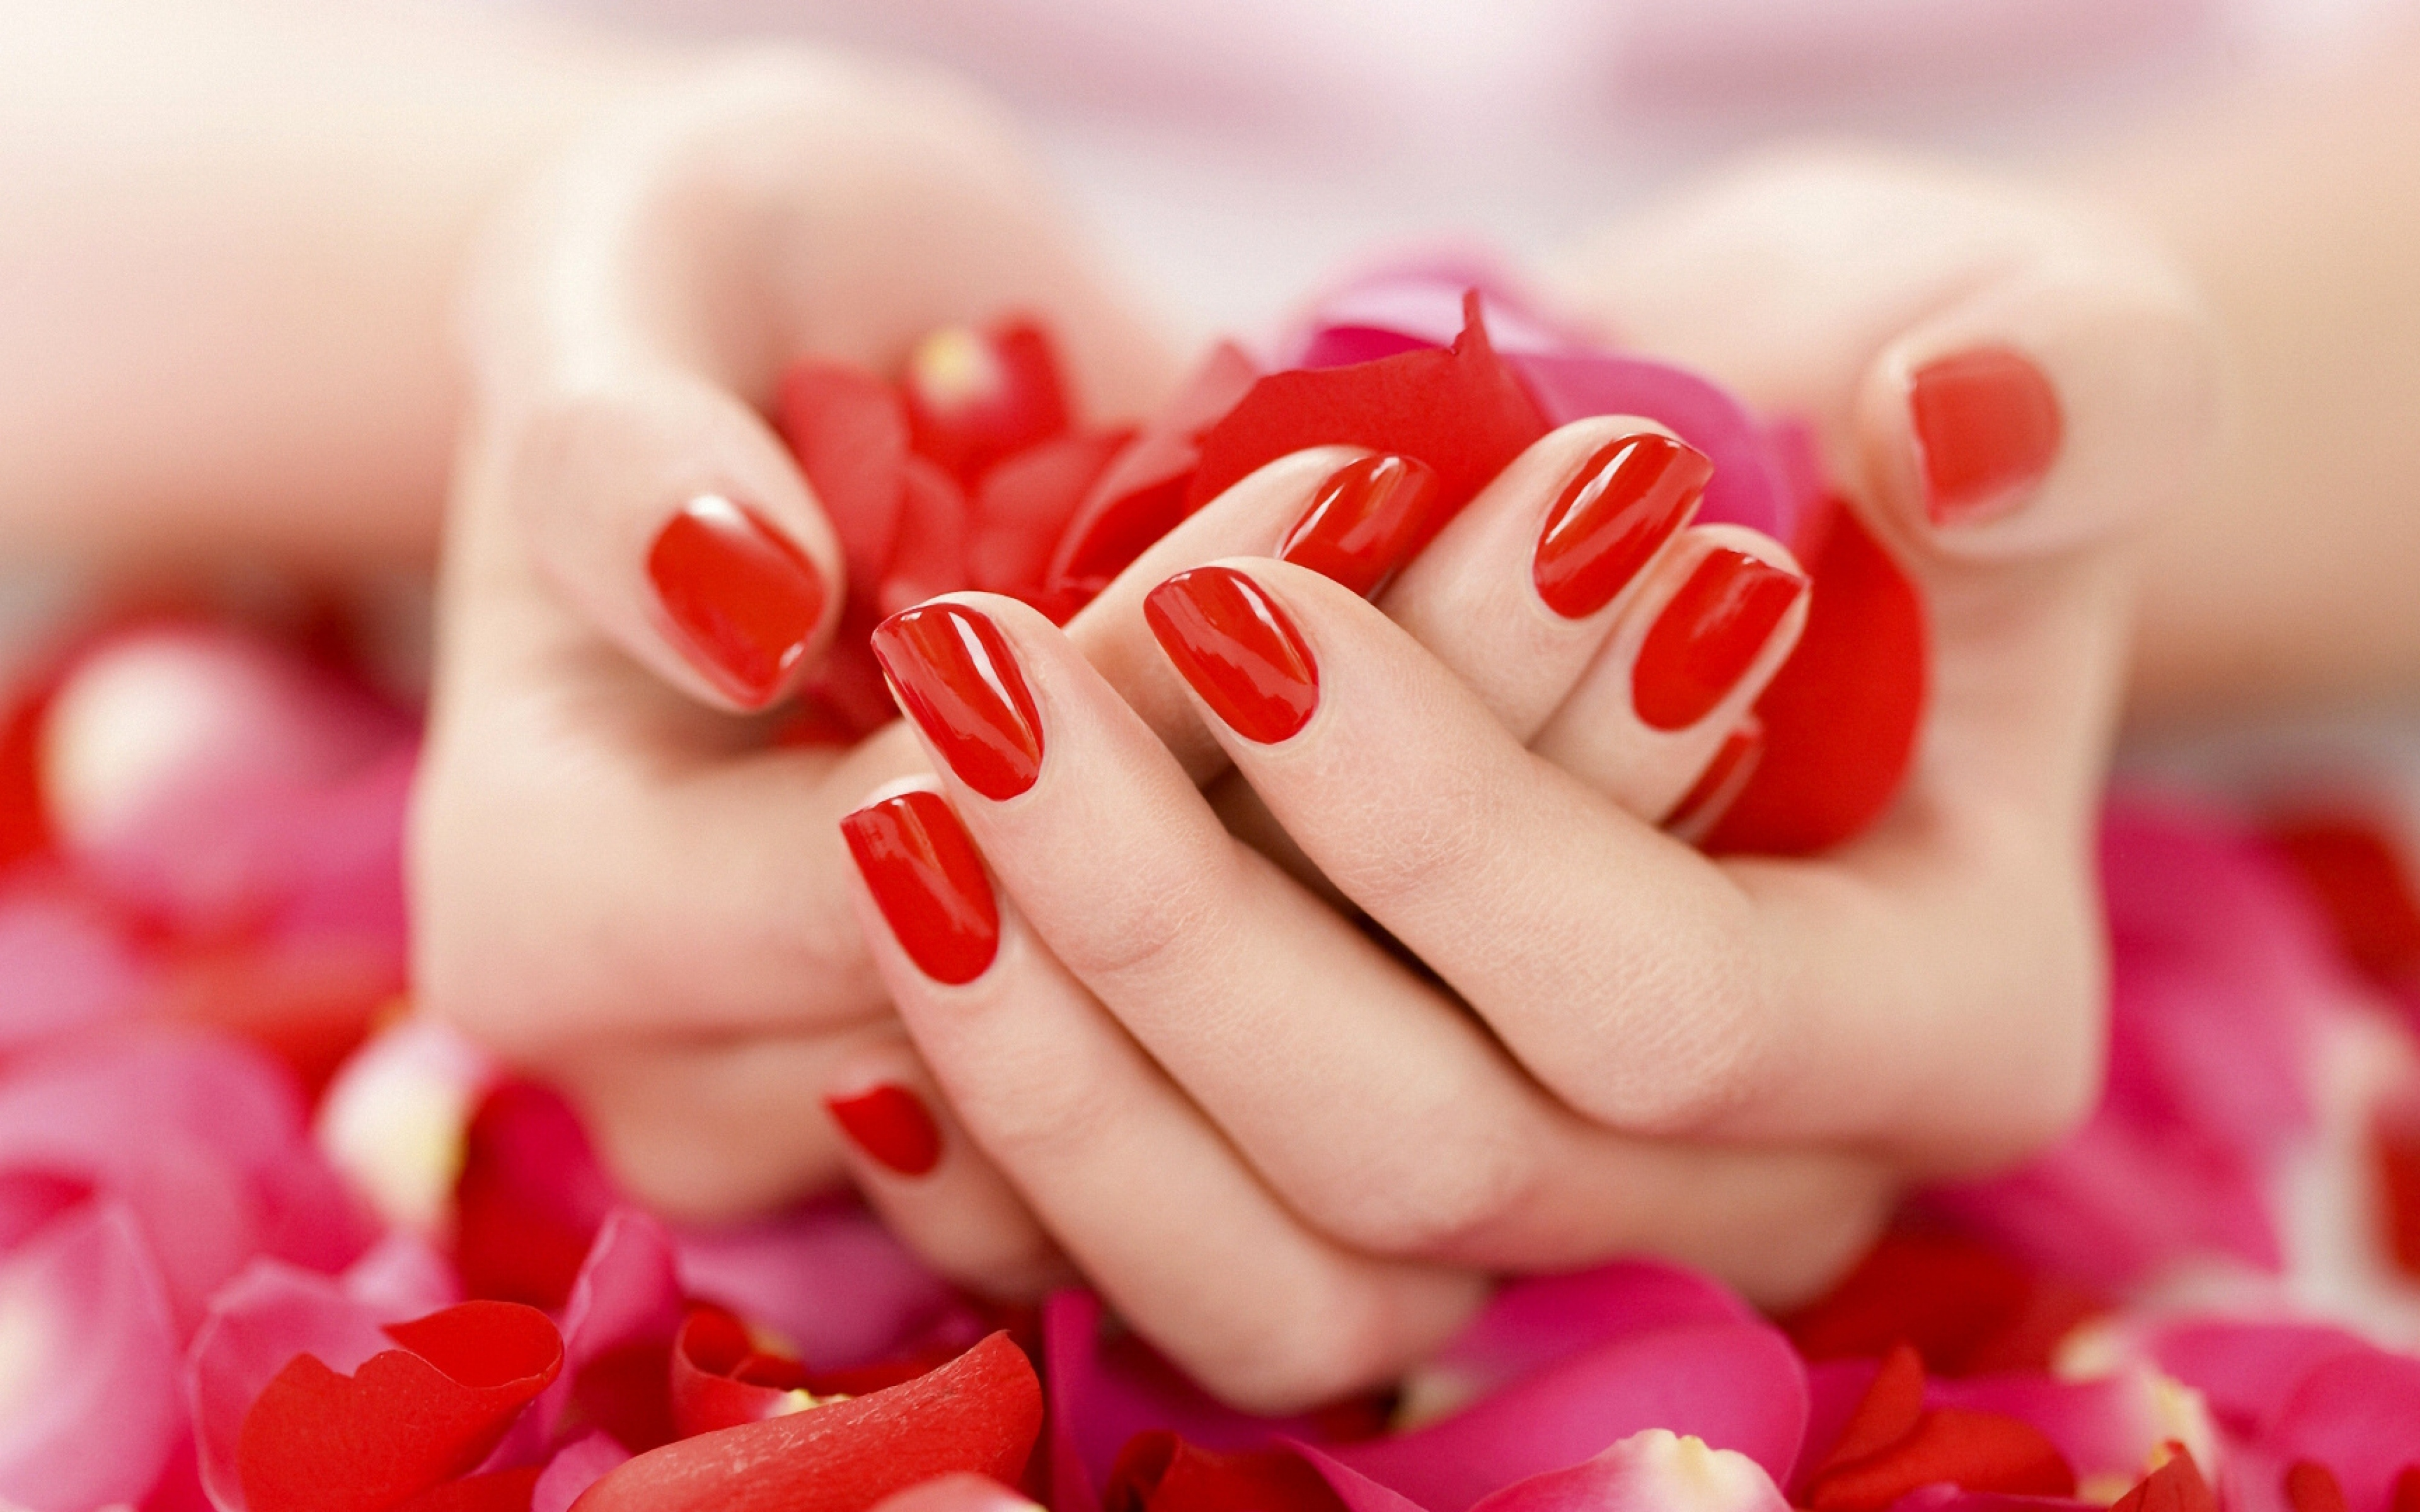 Lovely Nails & Spa 717 Blue Lakes Blvd N, Twin Falls, ID 83301 - YP.com